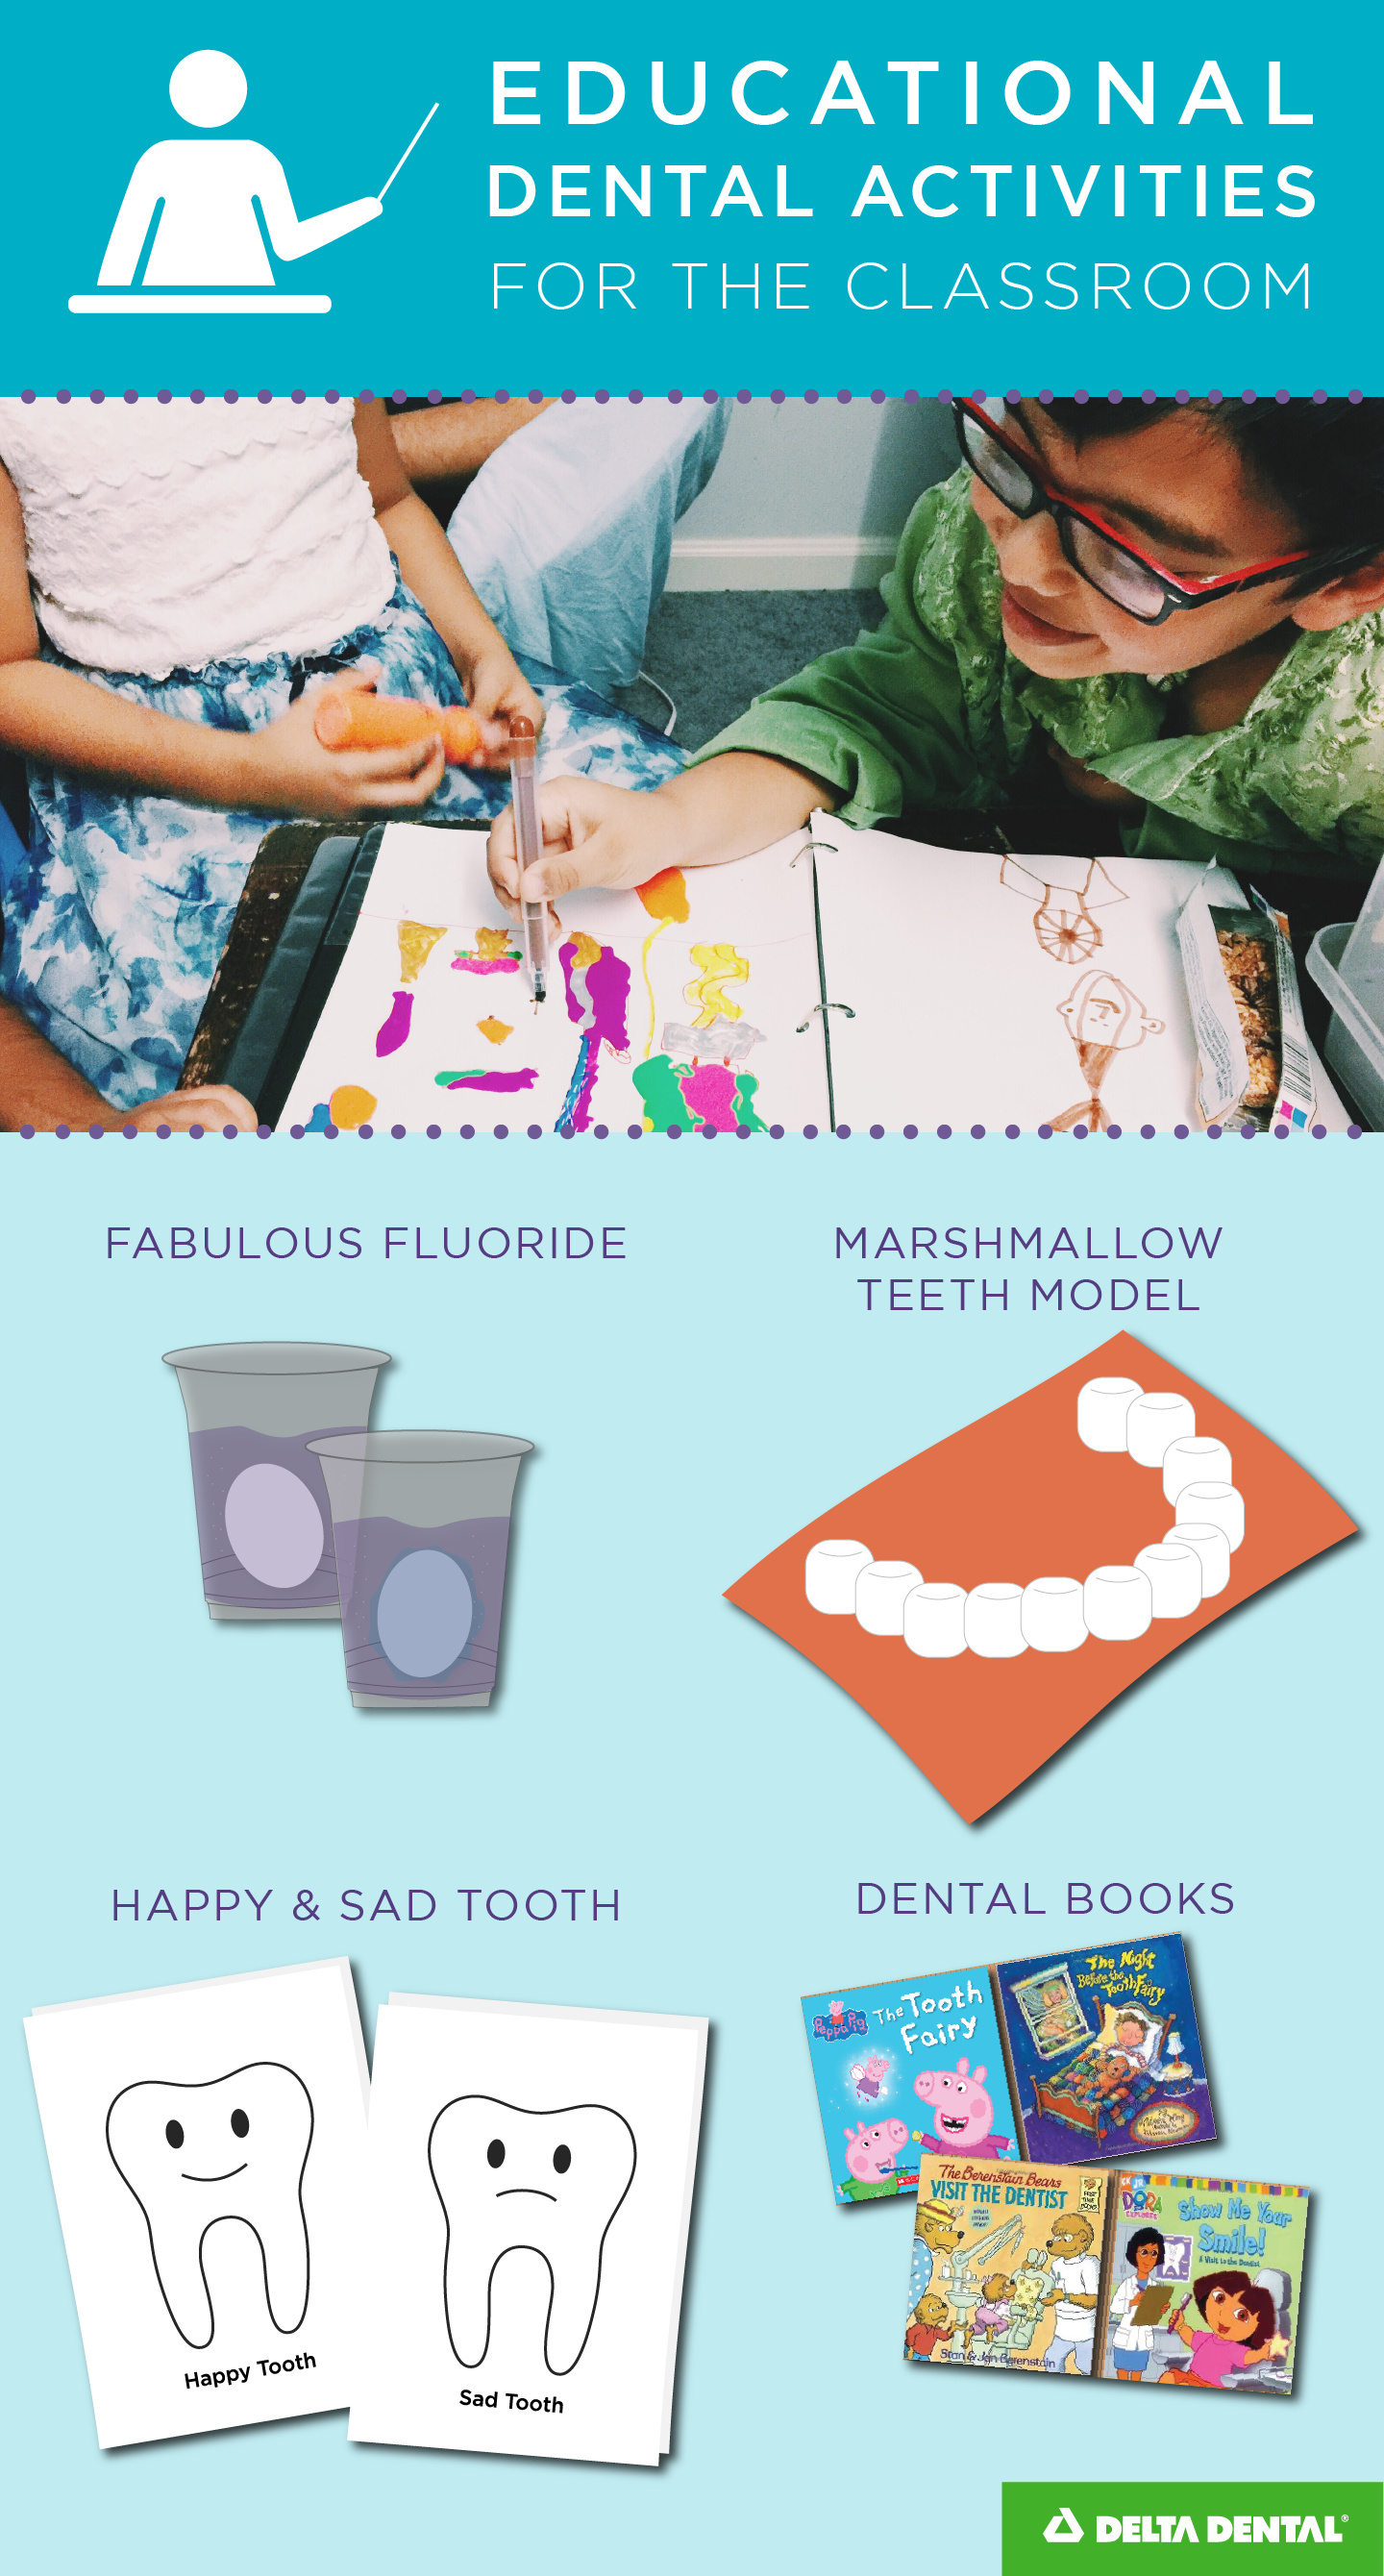 3 DentalThemed Resources for Educators Health lesson